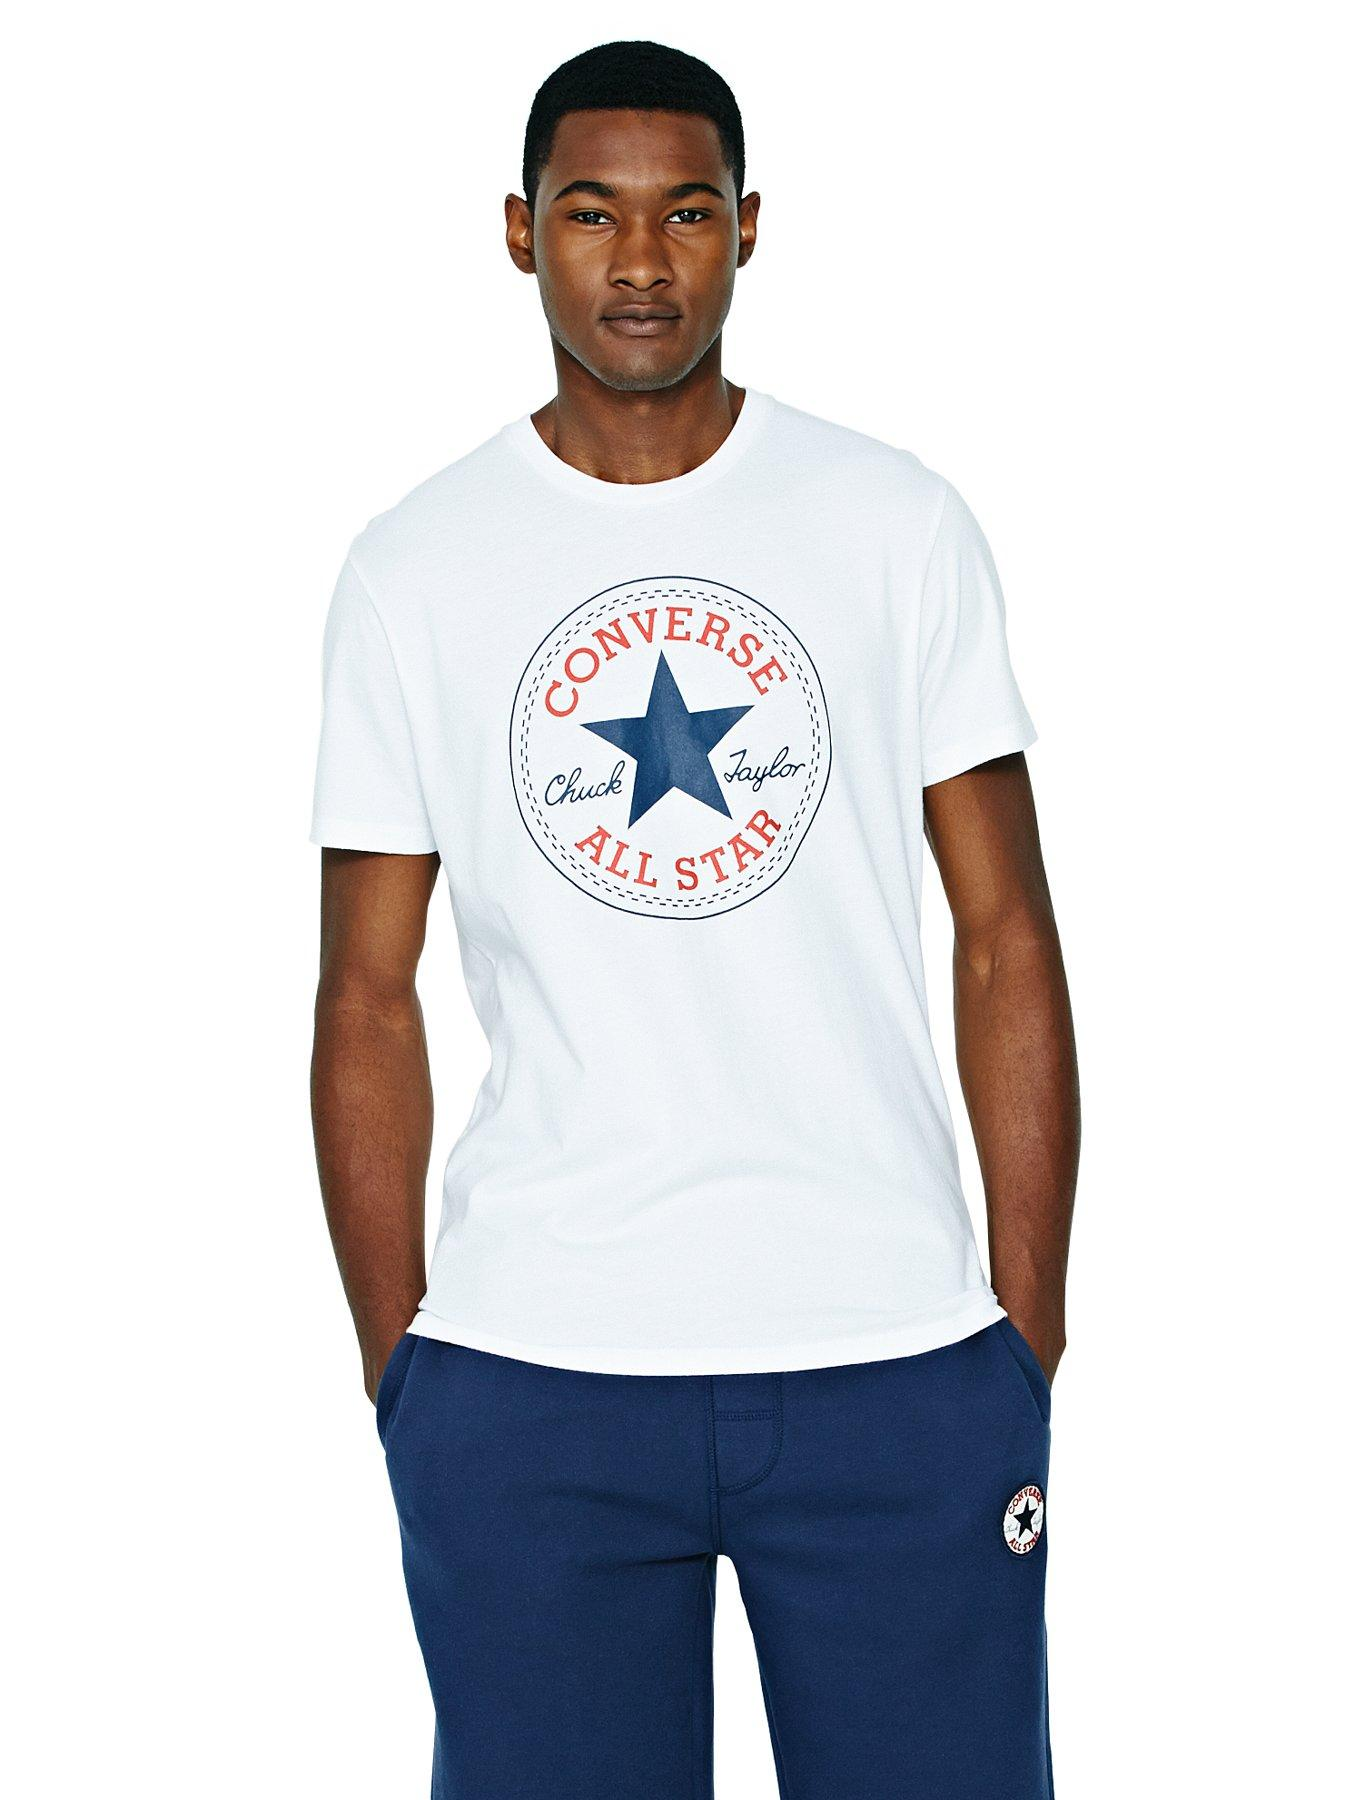 Converse Core Chuck Patch Mens T-shirt - White, Black,Grey,White,Navy